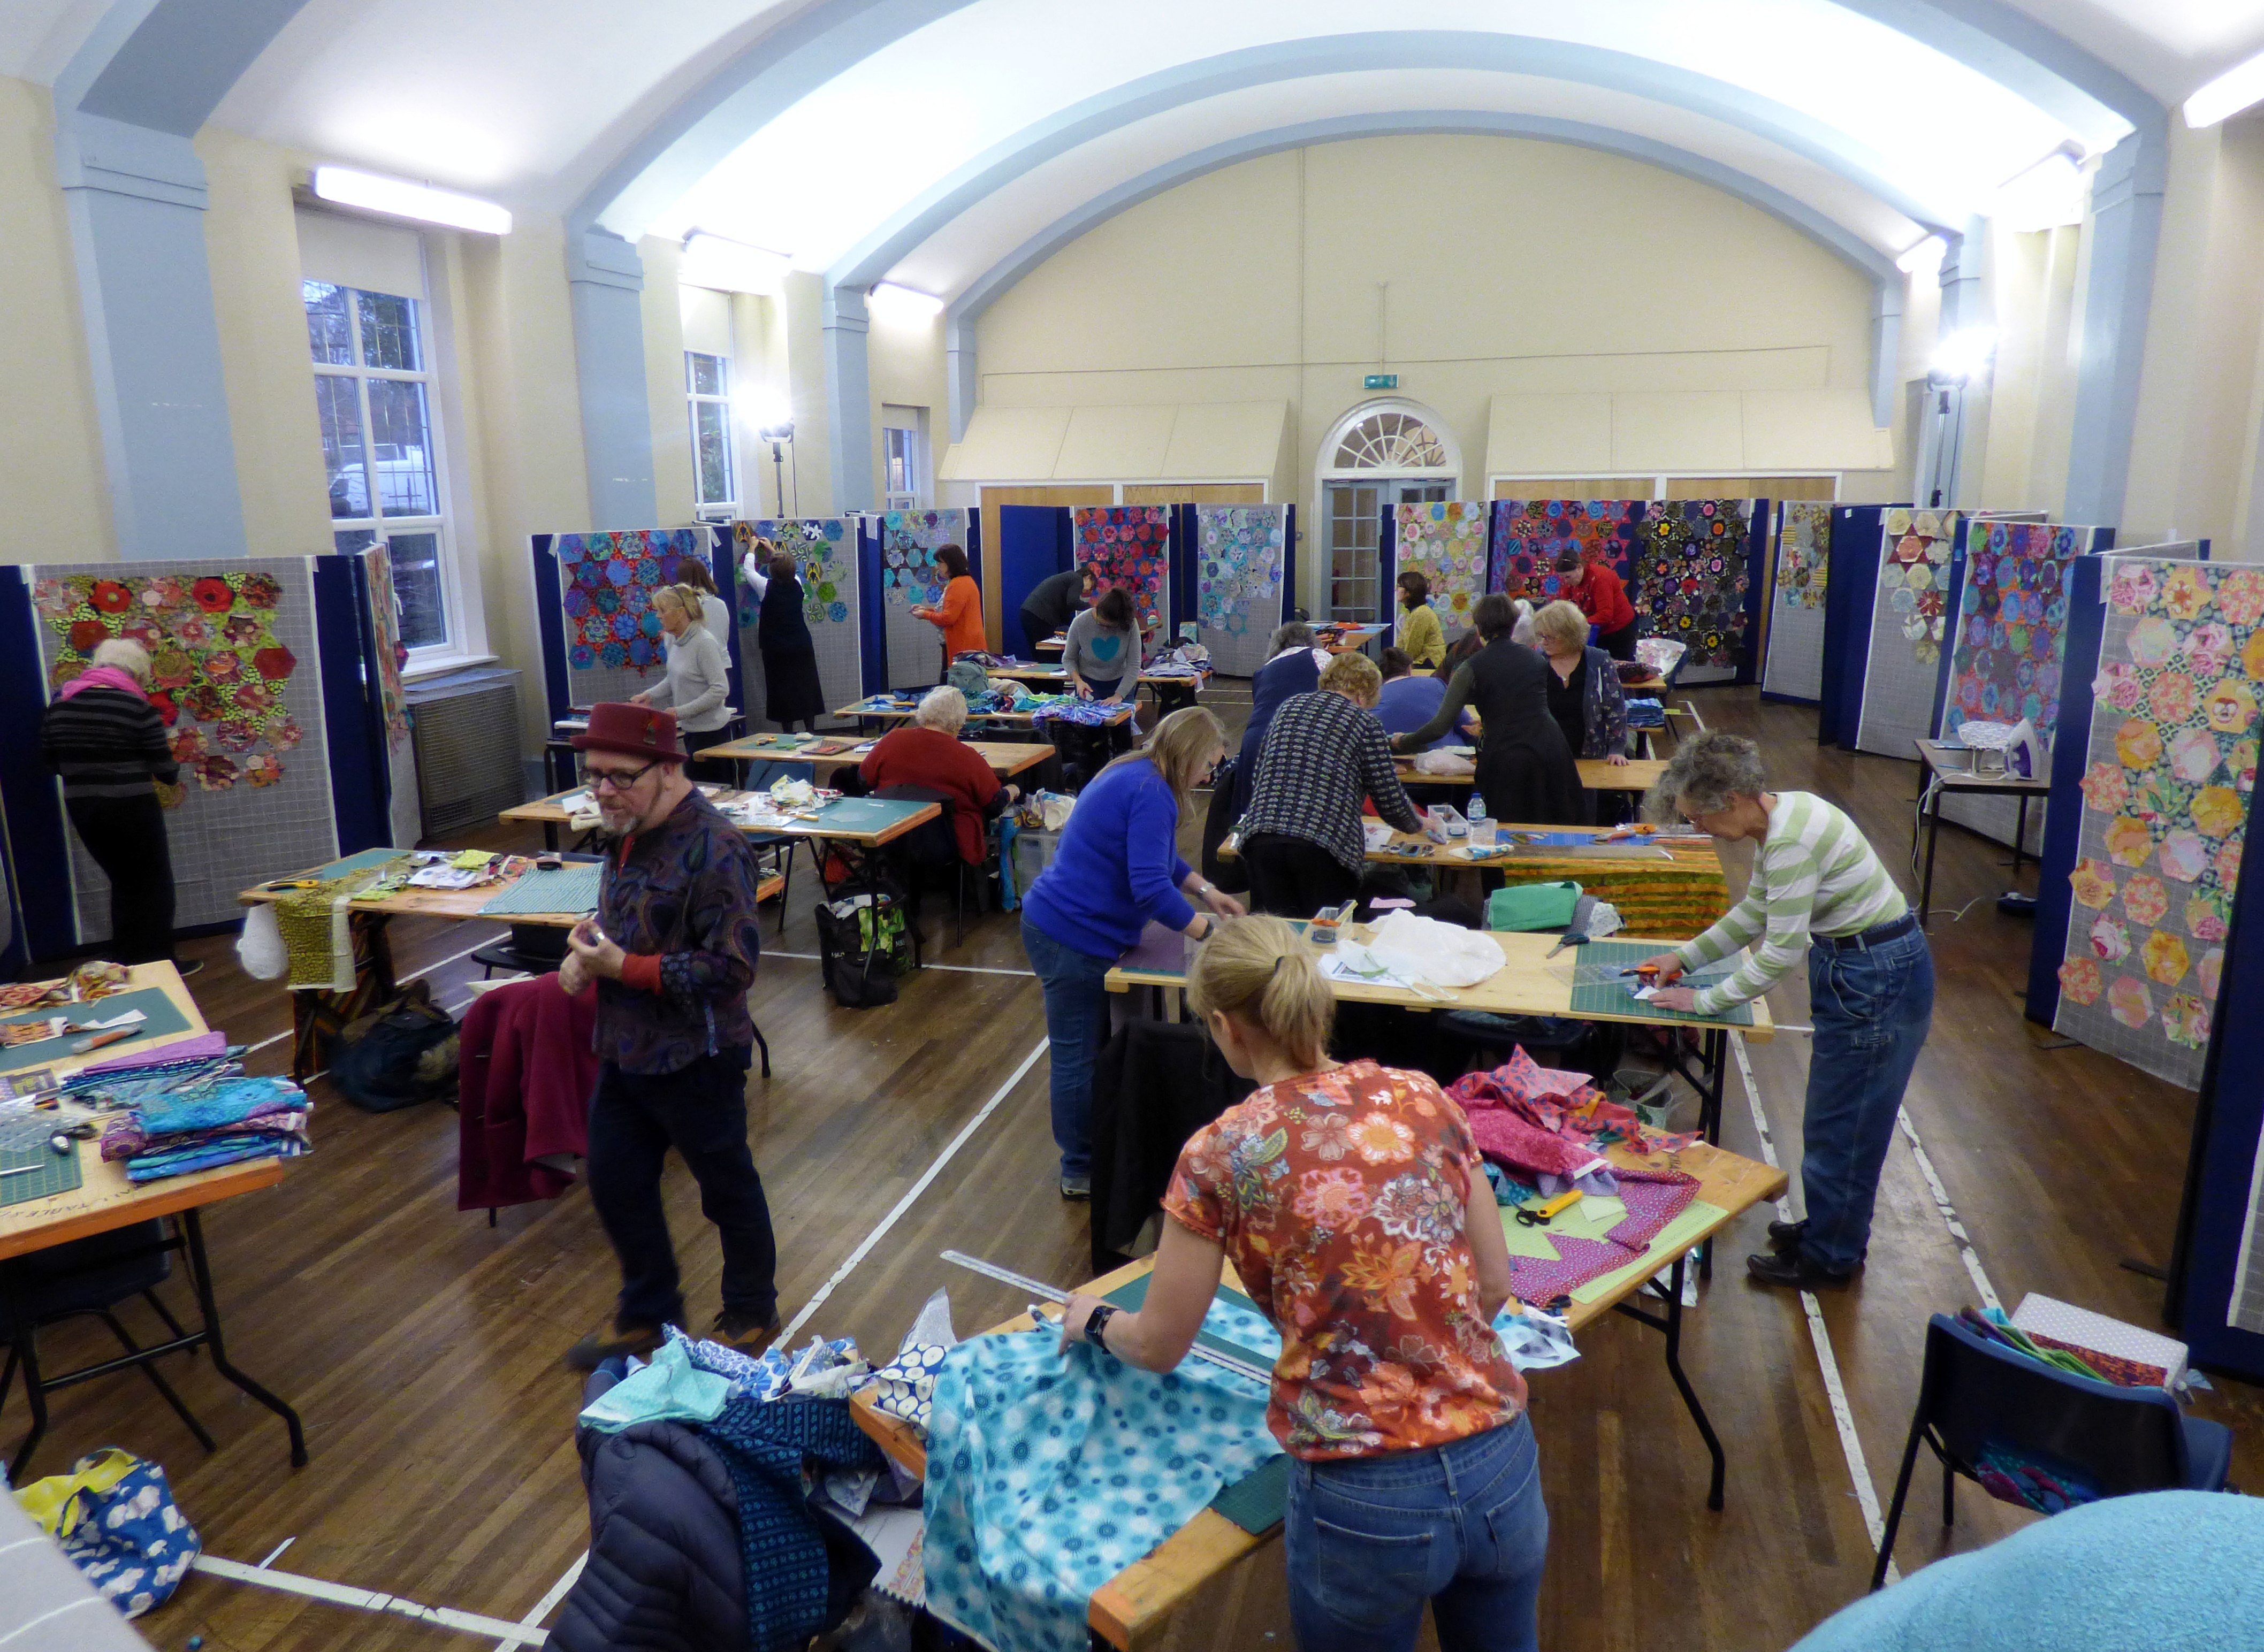 we are nearing the end of the day- Kaffe Fassett workshop, All Hallows, Dec 2016